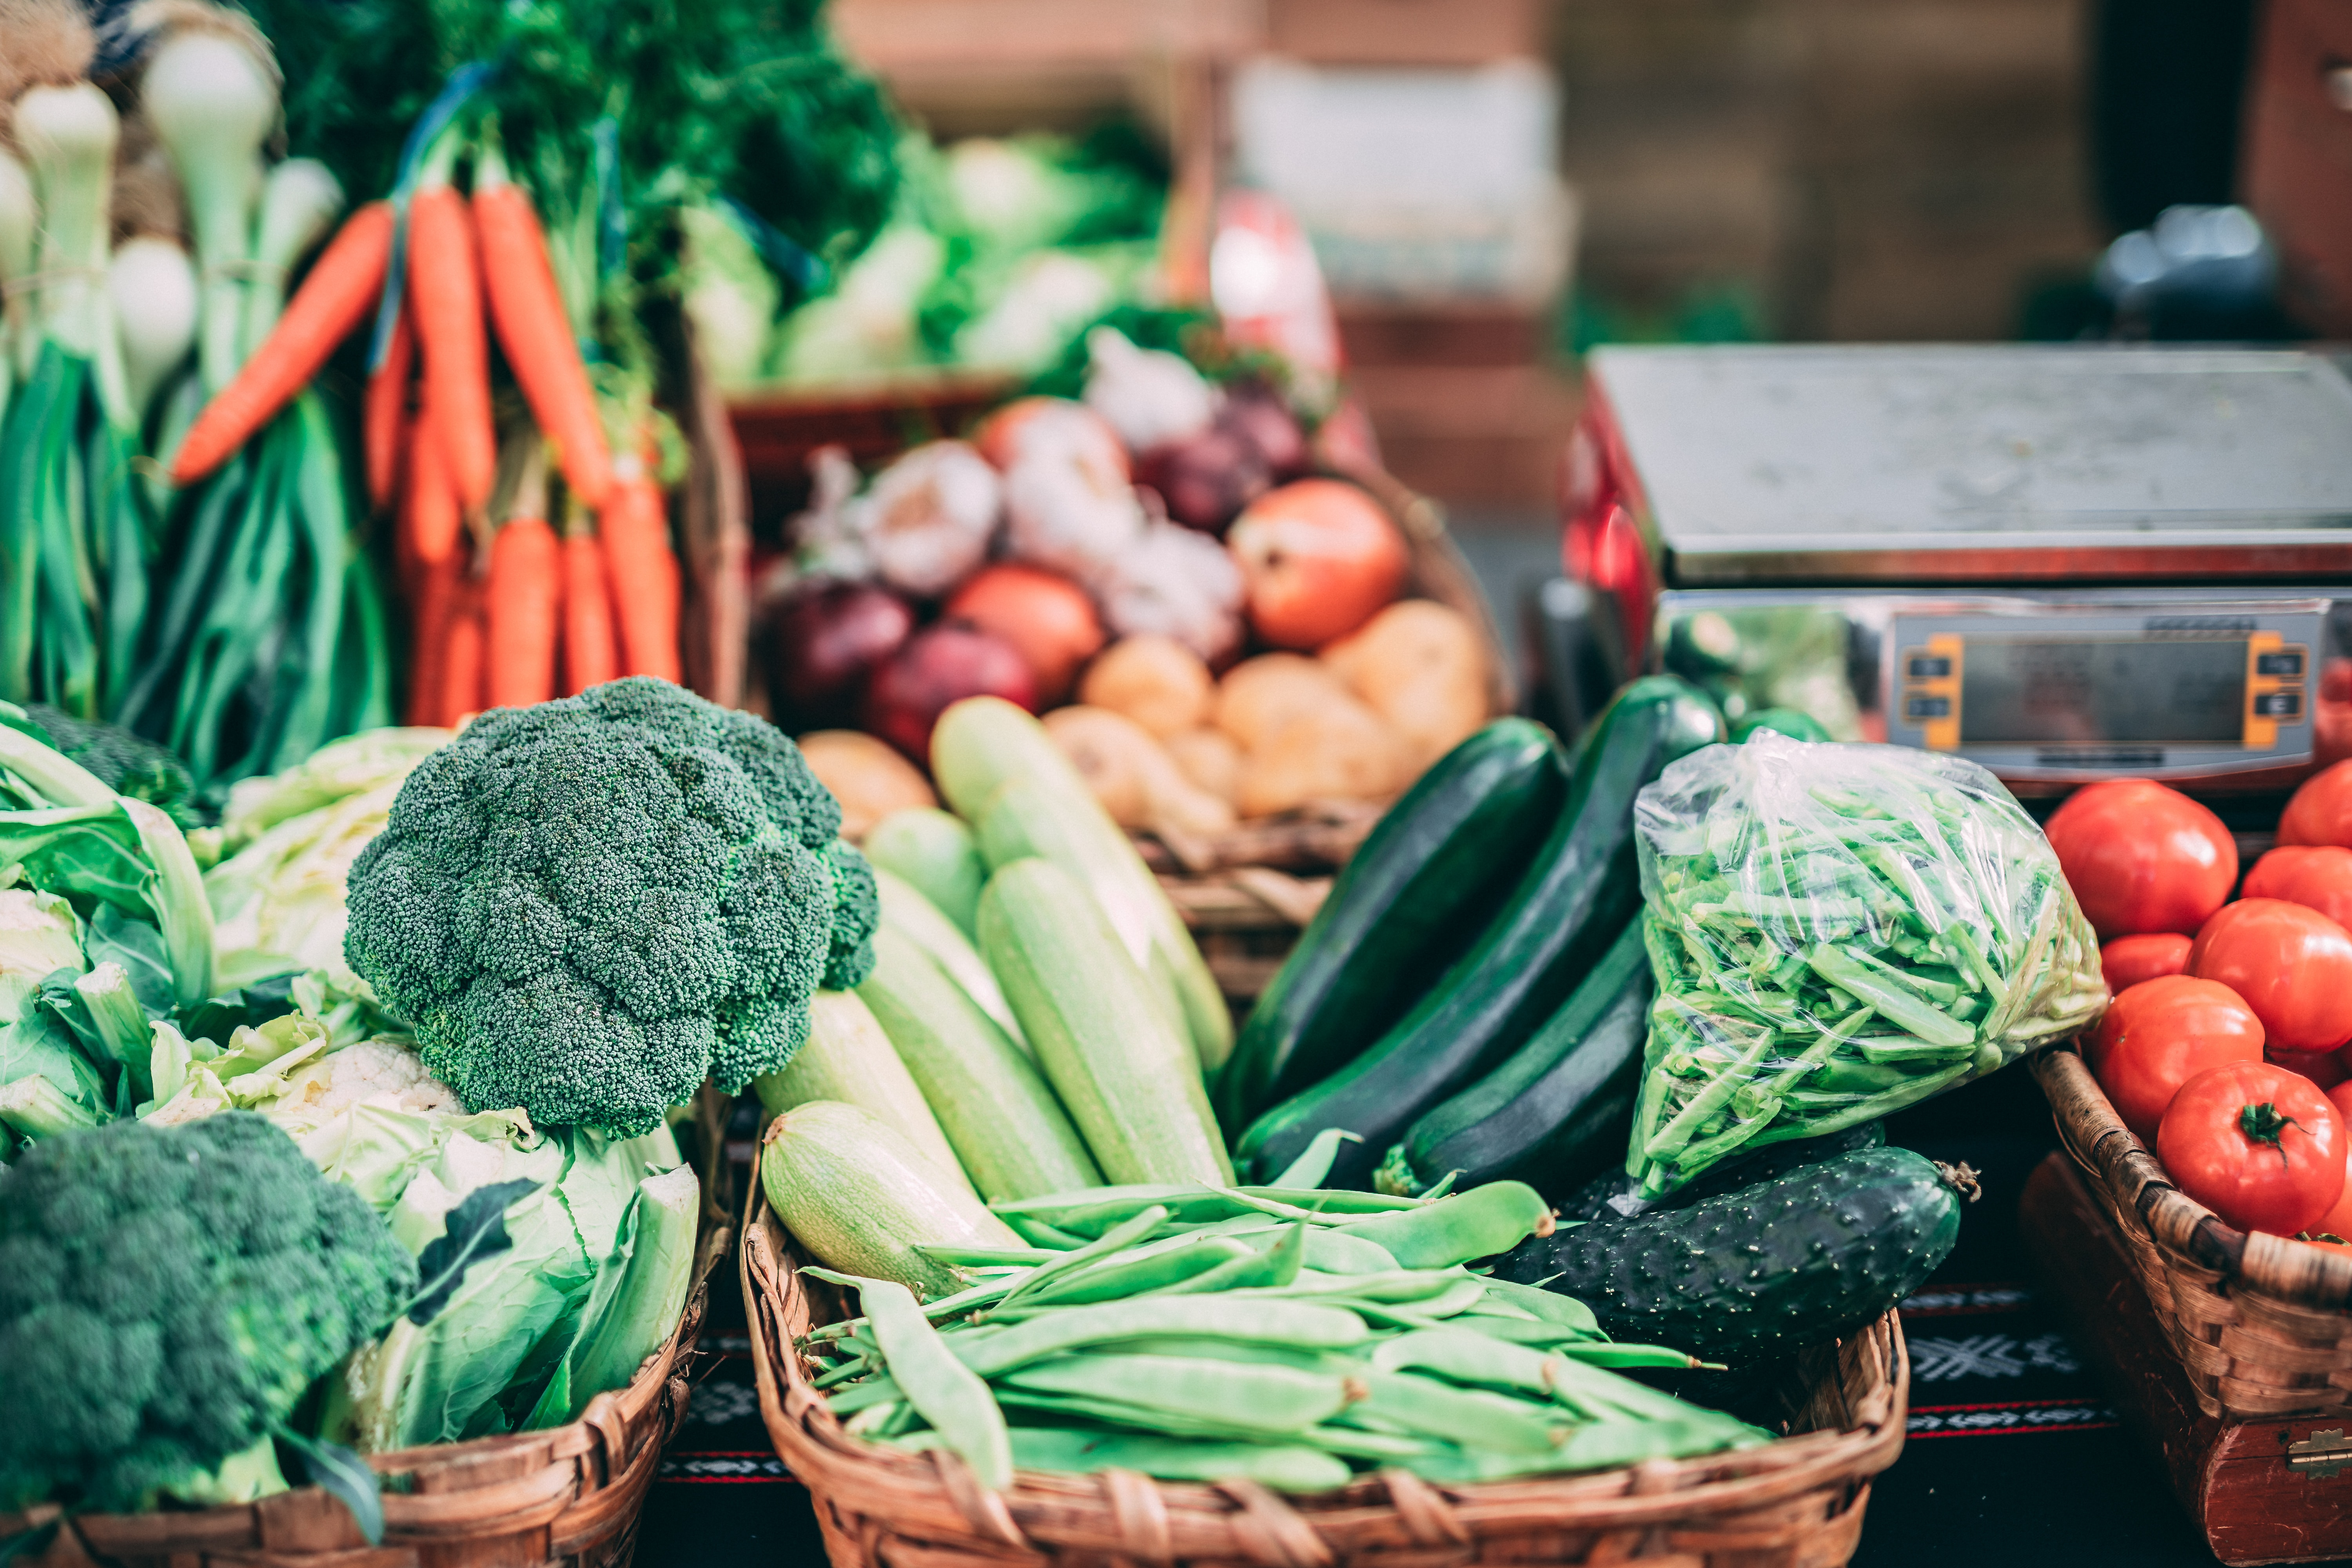 Doing your shopping in local markets is a good idea to make Informed Purchases